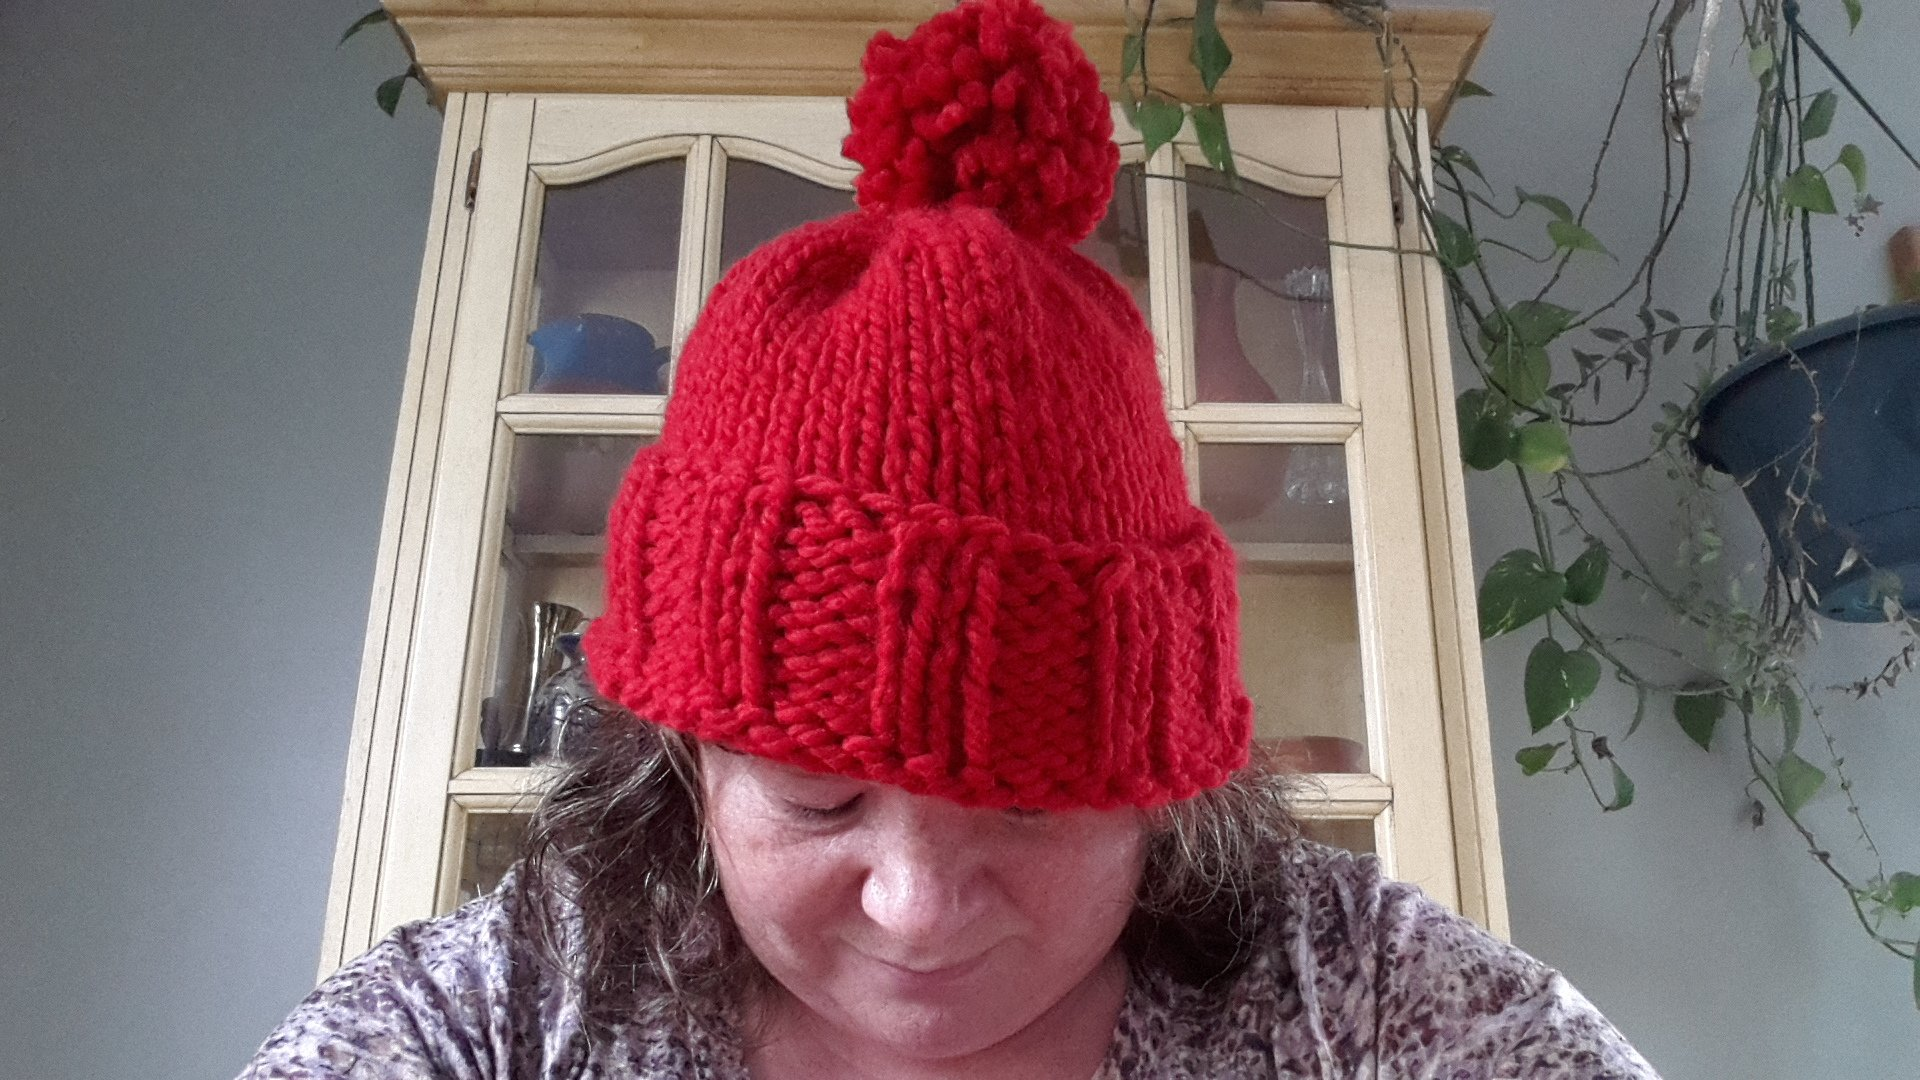 How to knit a big hat sheep and stitch i followed along with your video and it was great i really enjoyed knitting it and ive started another your teaching videos are my favourites baditri Gallery